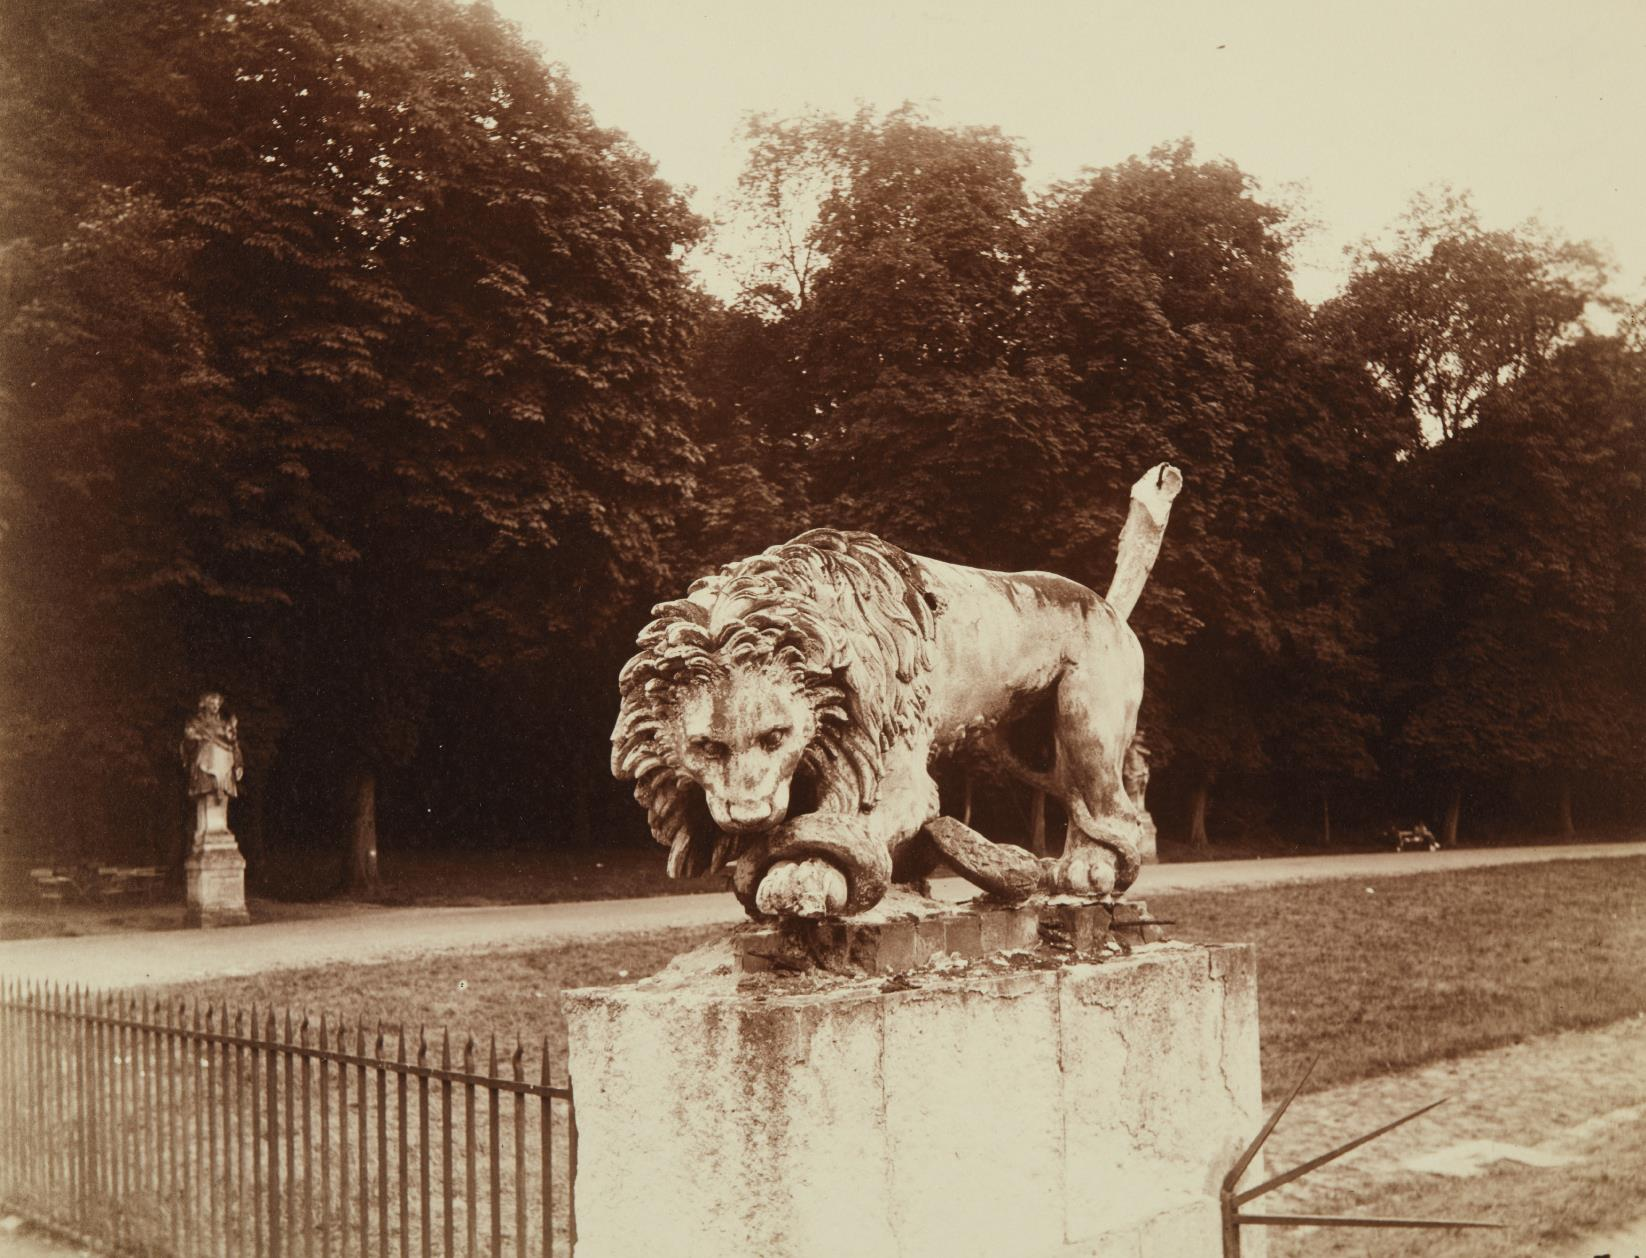 Eugene Atget-Lion, St. Cloud-1920